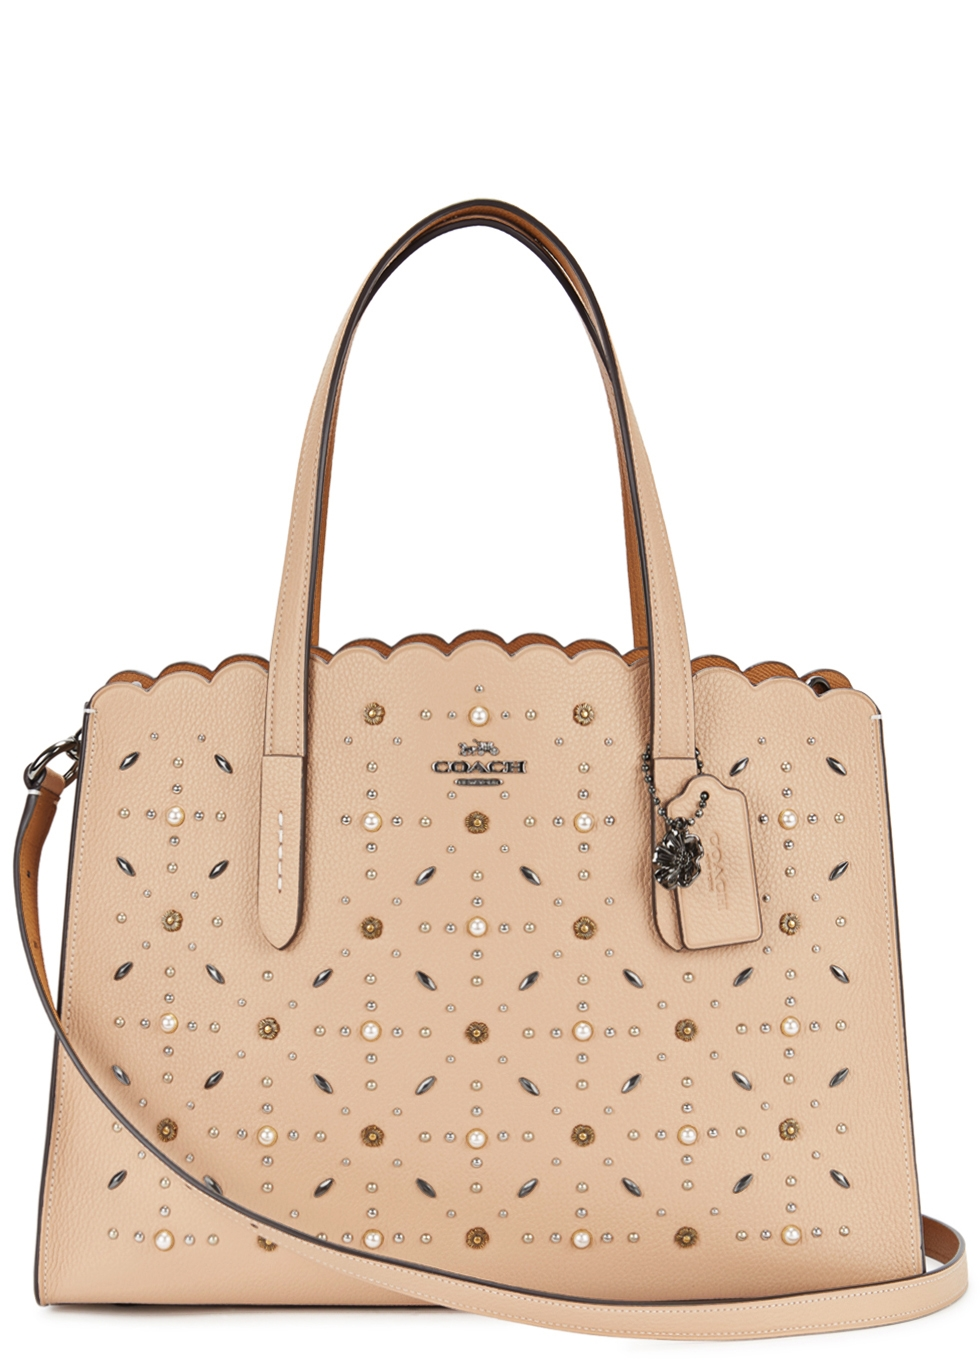 CHARLIE STUDDED LEATHER TOTE